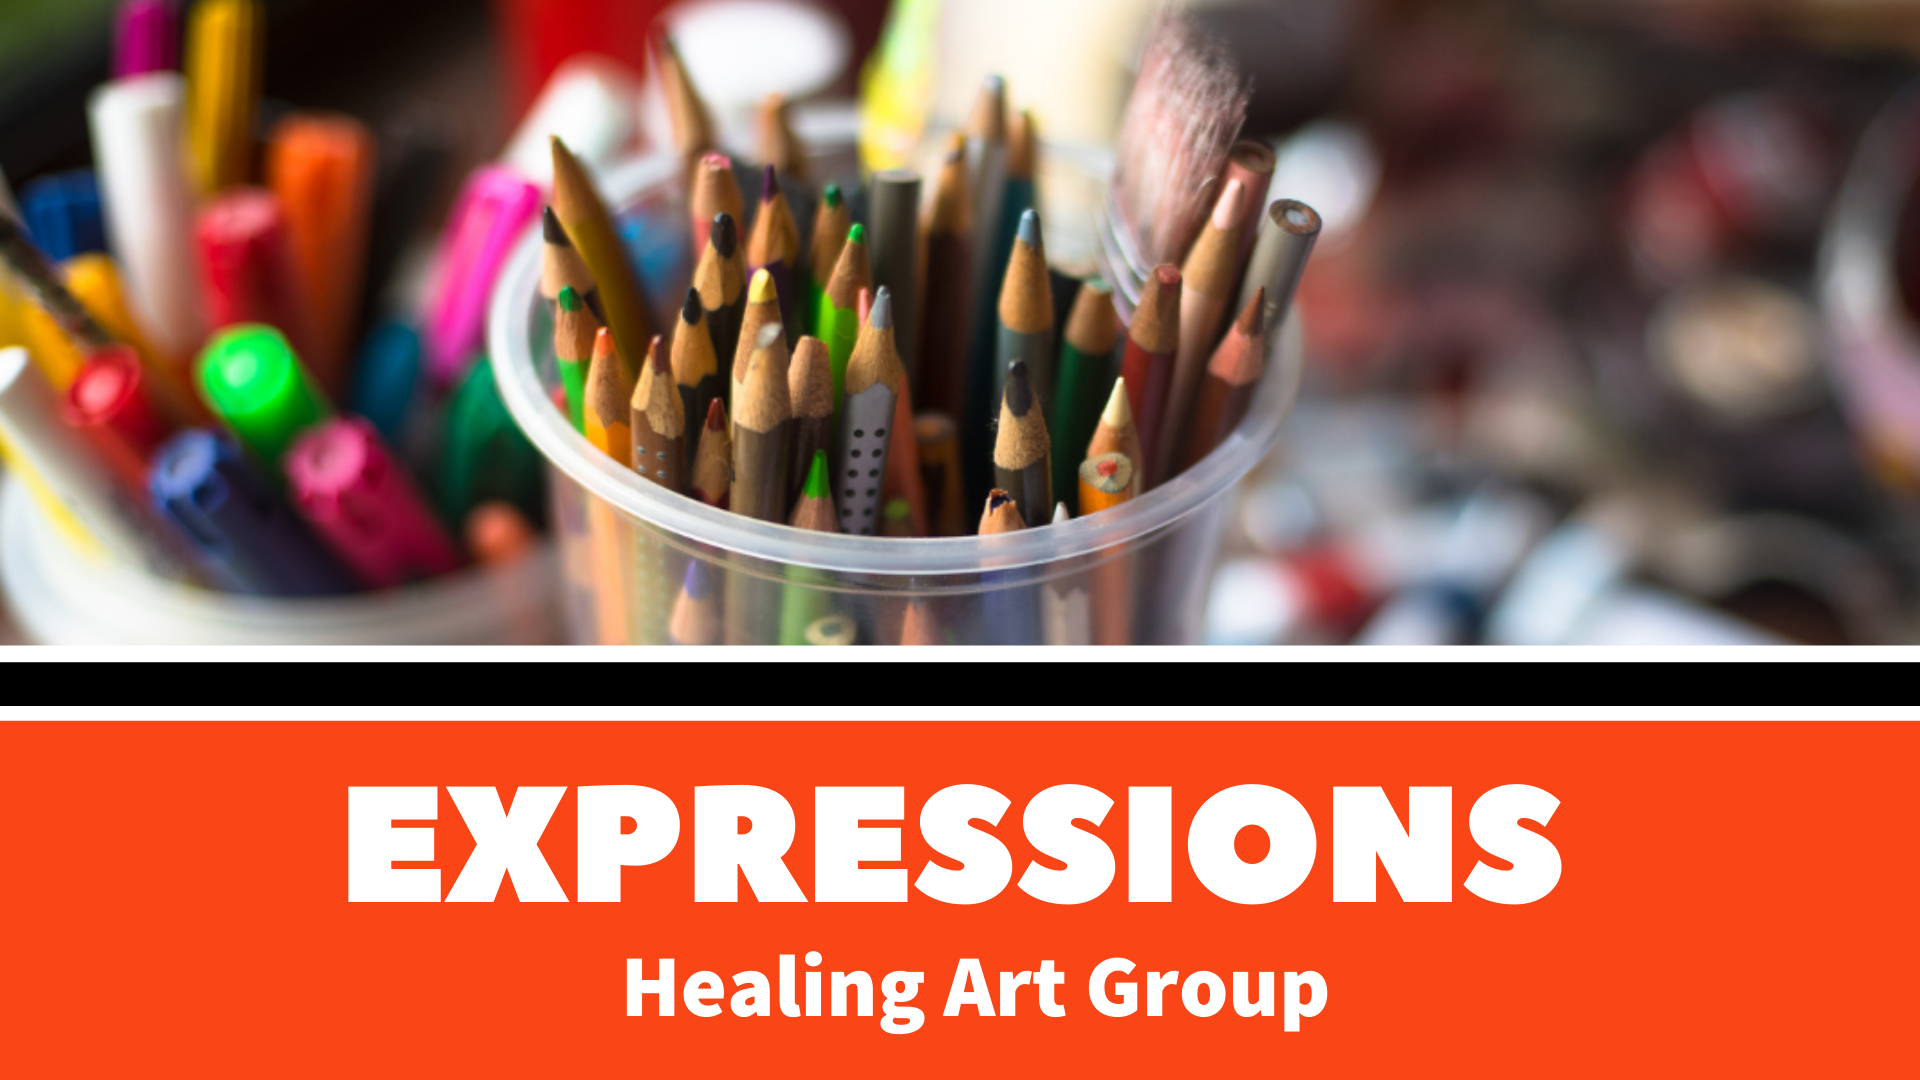 Expressions Healing Art Group (Virtual) @ YWCA Advocacy Center | Lafayette | Indiana | United States